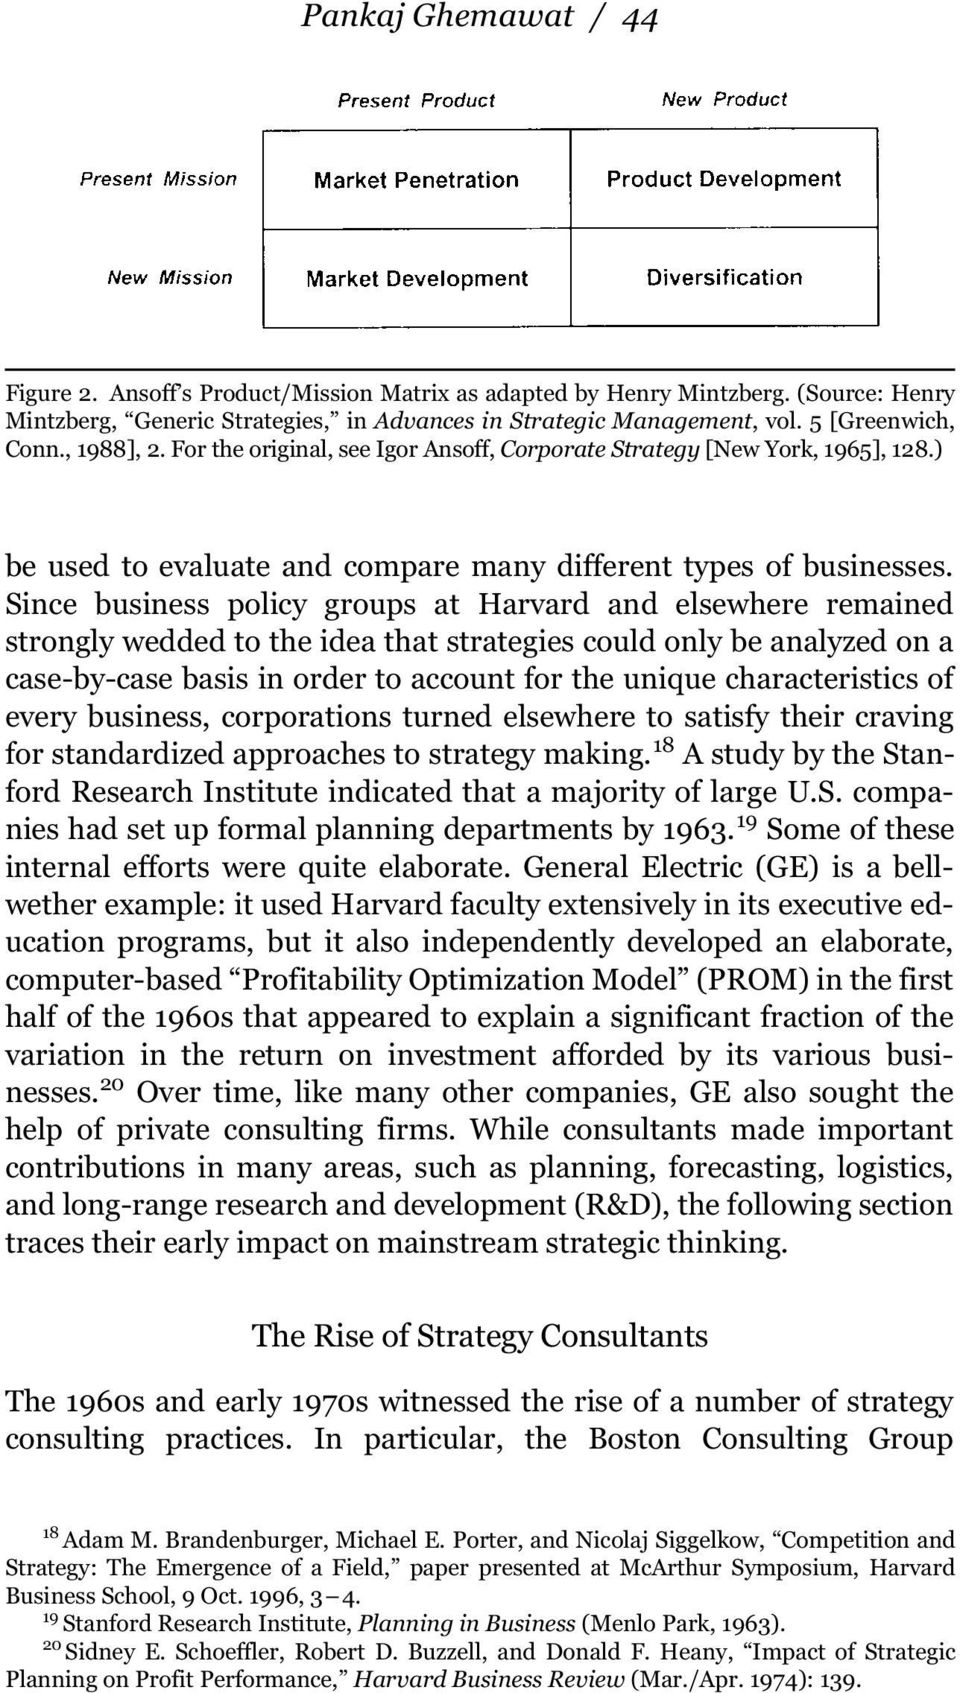 Since business policy groups at Harvard and elsewhere remained strongly wedded to the idea that strategies could only be analyzed on a case-by-case basis in order to account for the unique